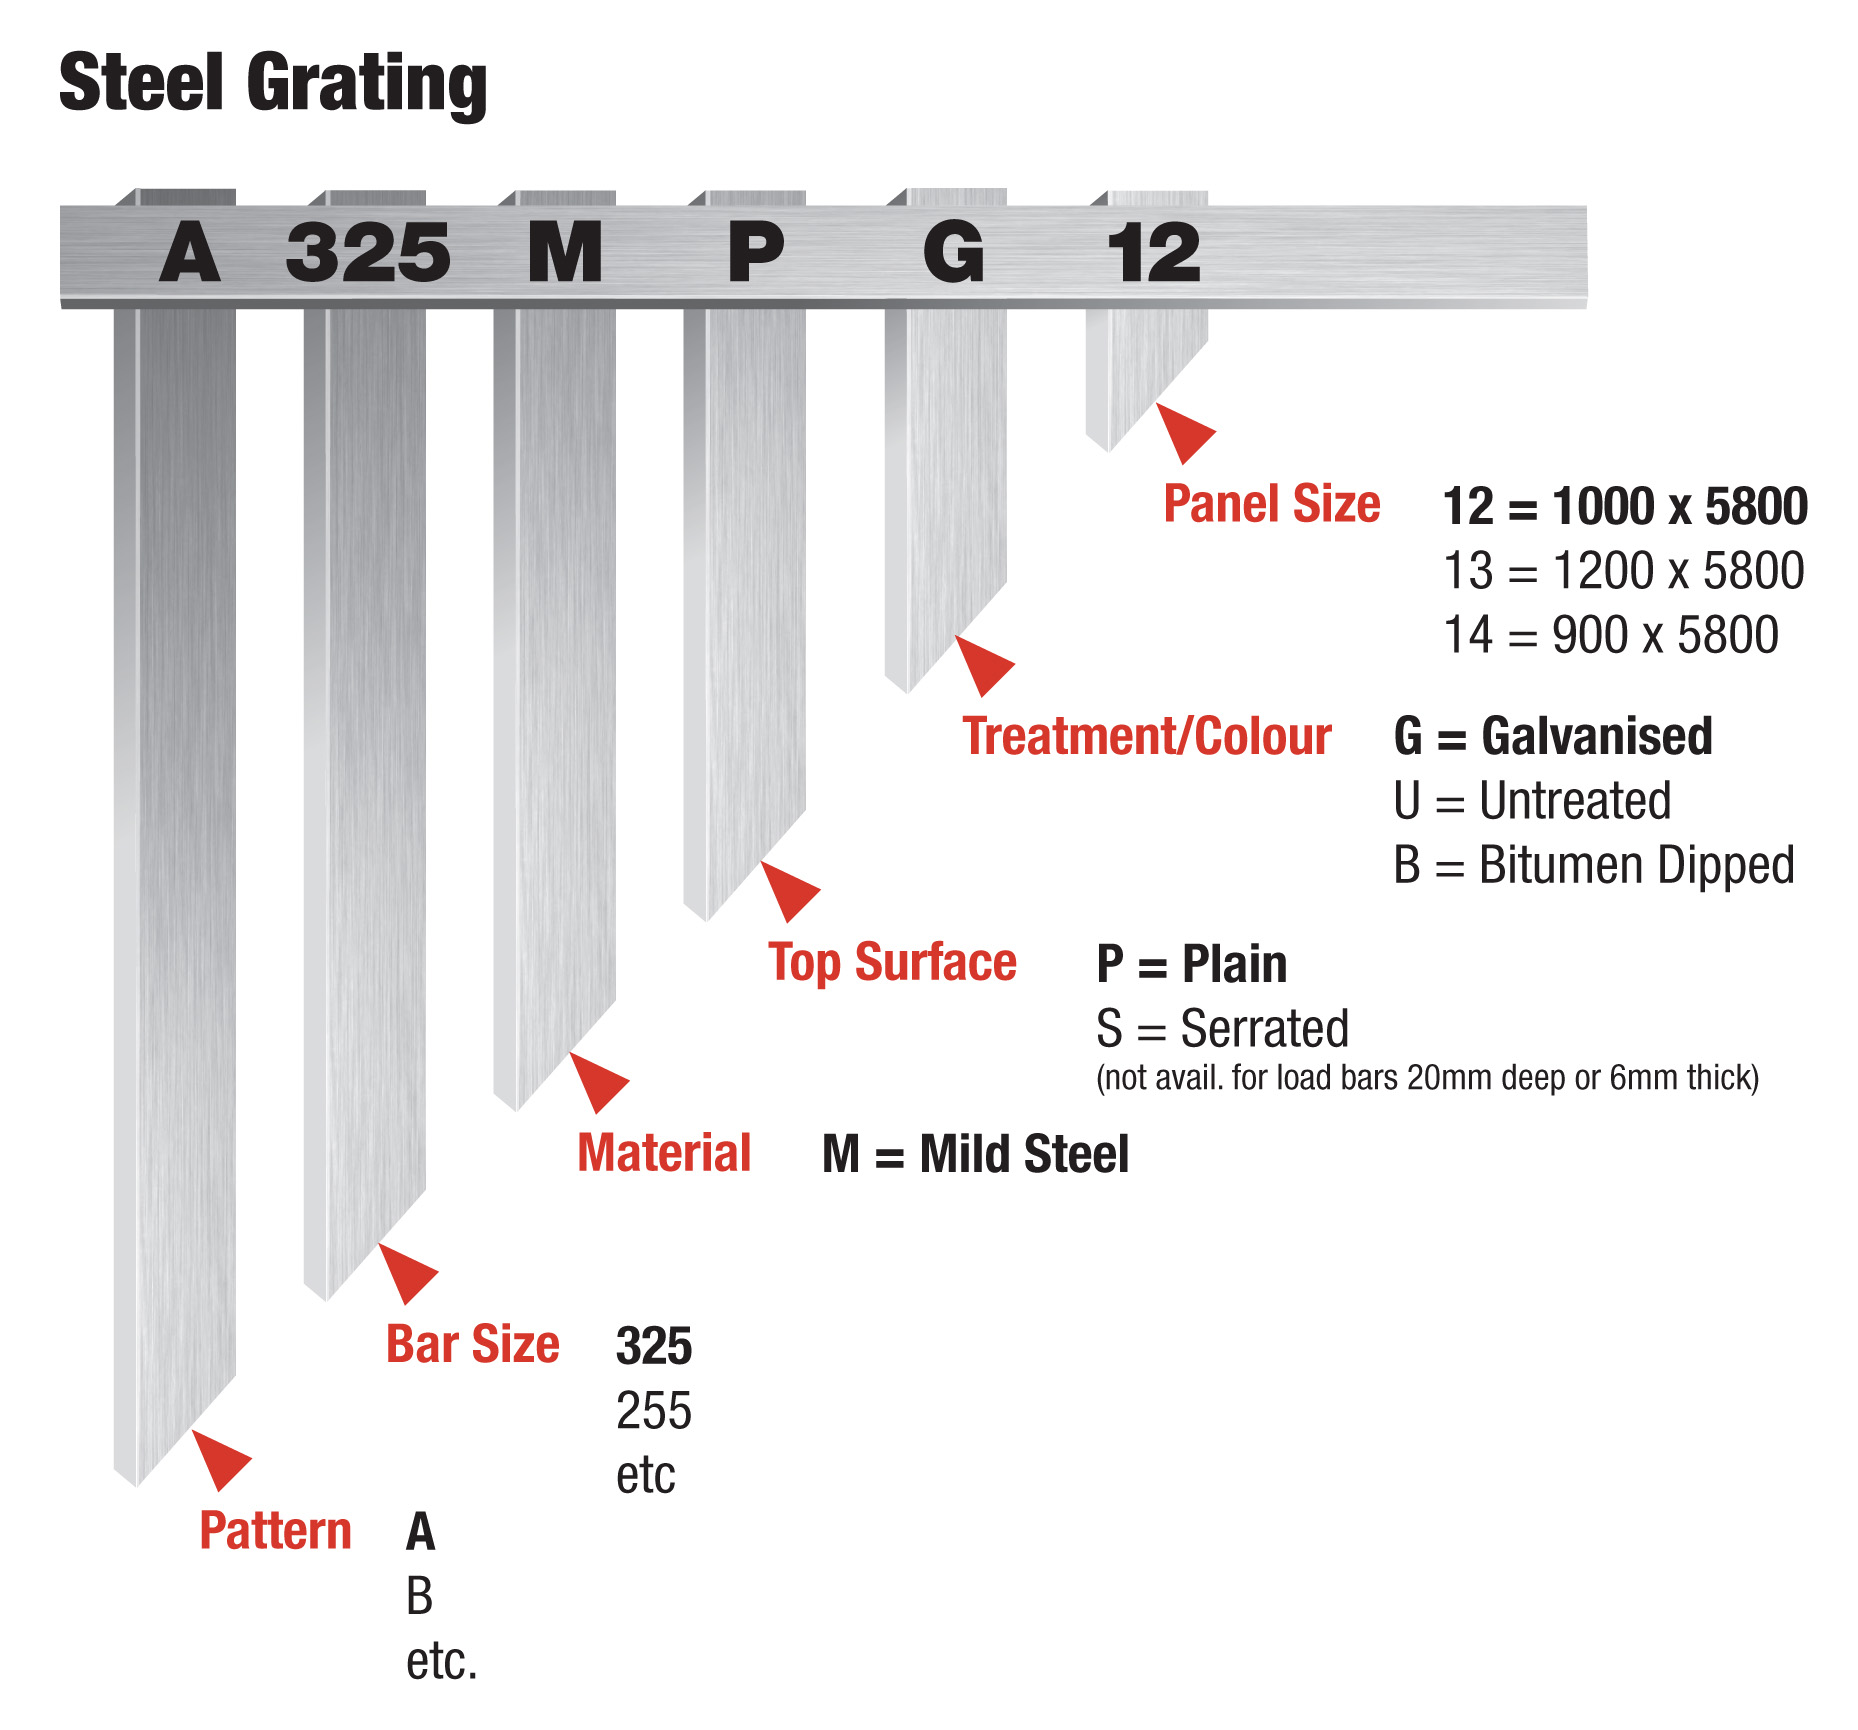 STEEL GRATING DIAGRAM